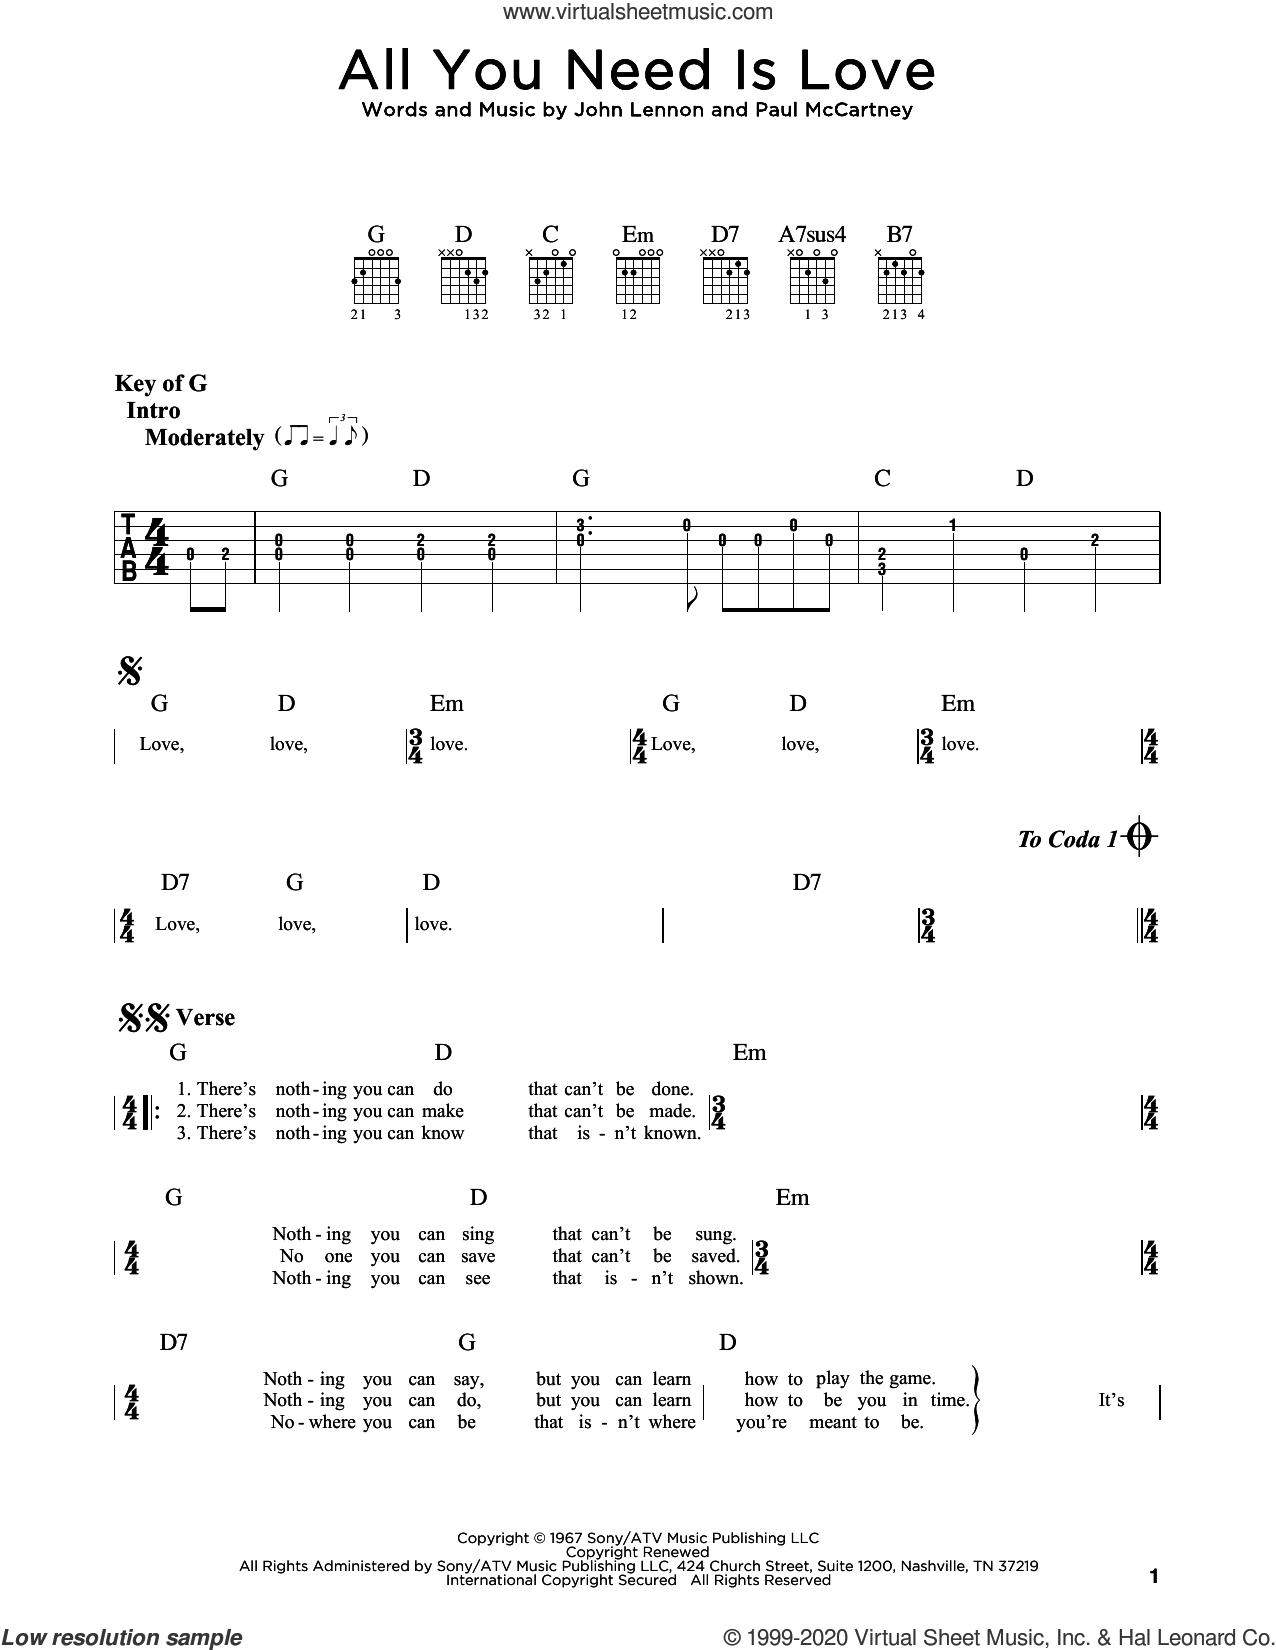 All You Need Is Love sheet music for guitar (rhythm tablature) by The Beatles, John Lennon and Paul McCartney, intermediate skill level